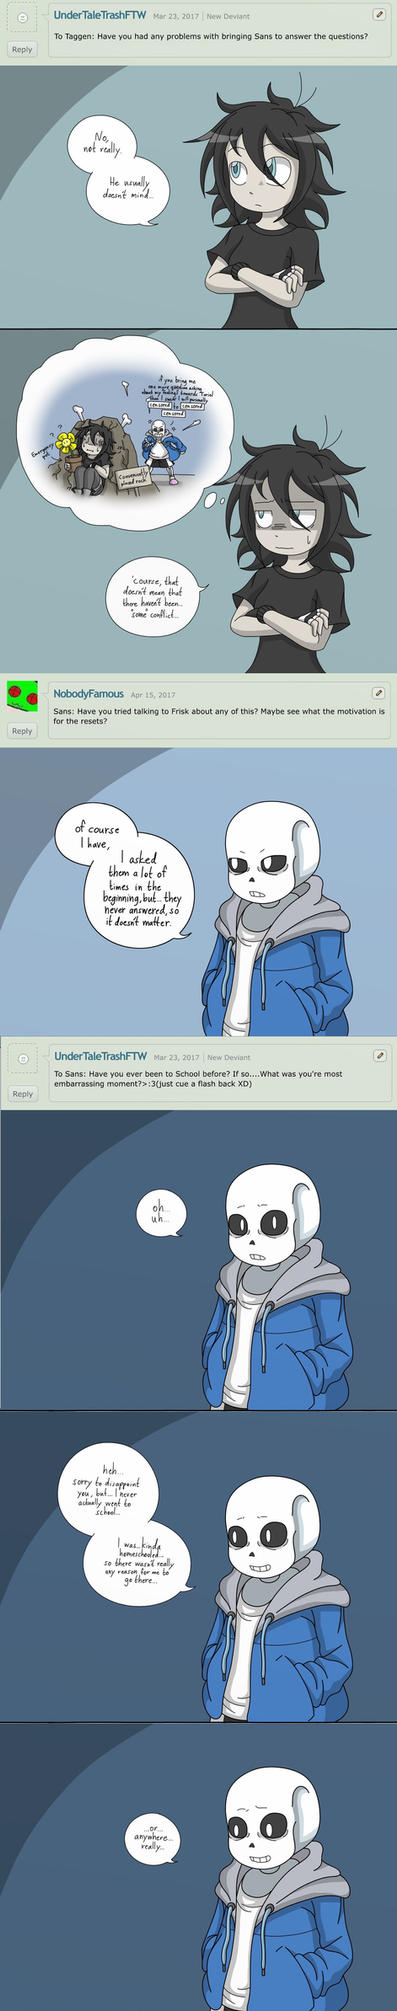 Ask (Sans and me), Memories by taggen96